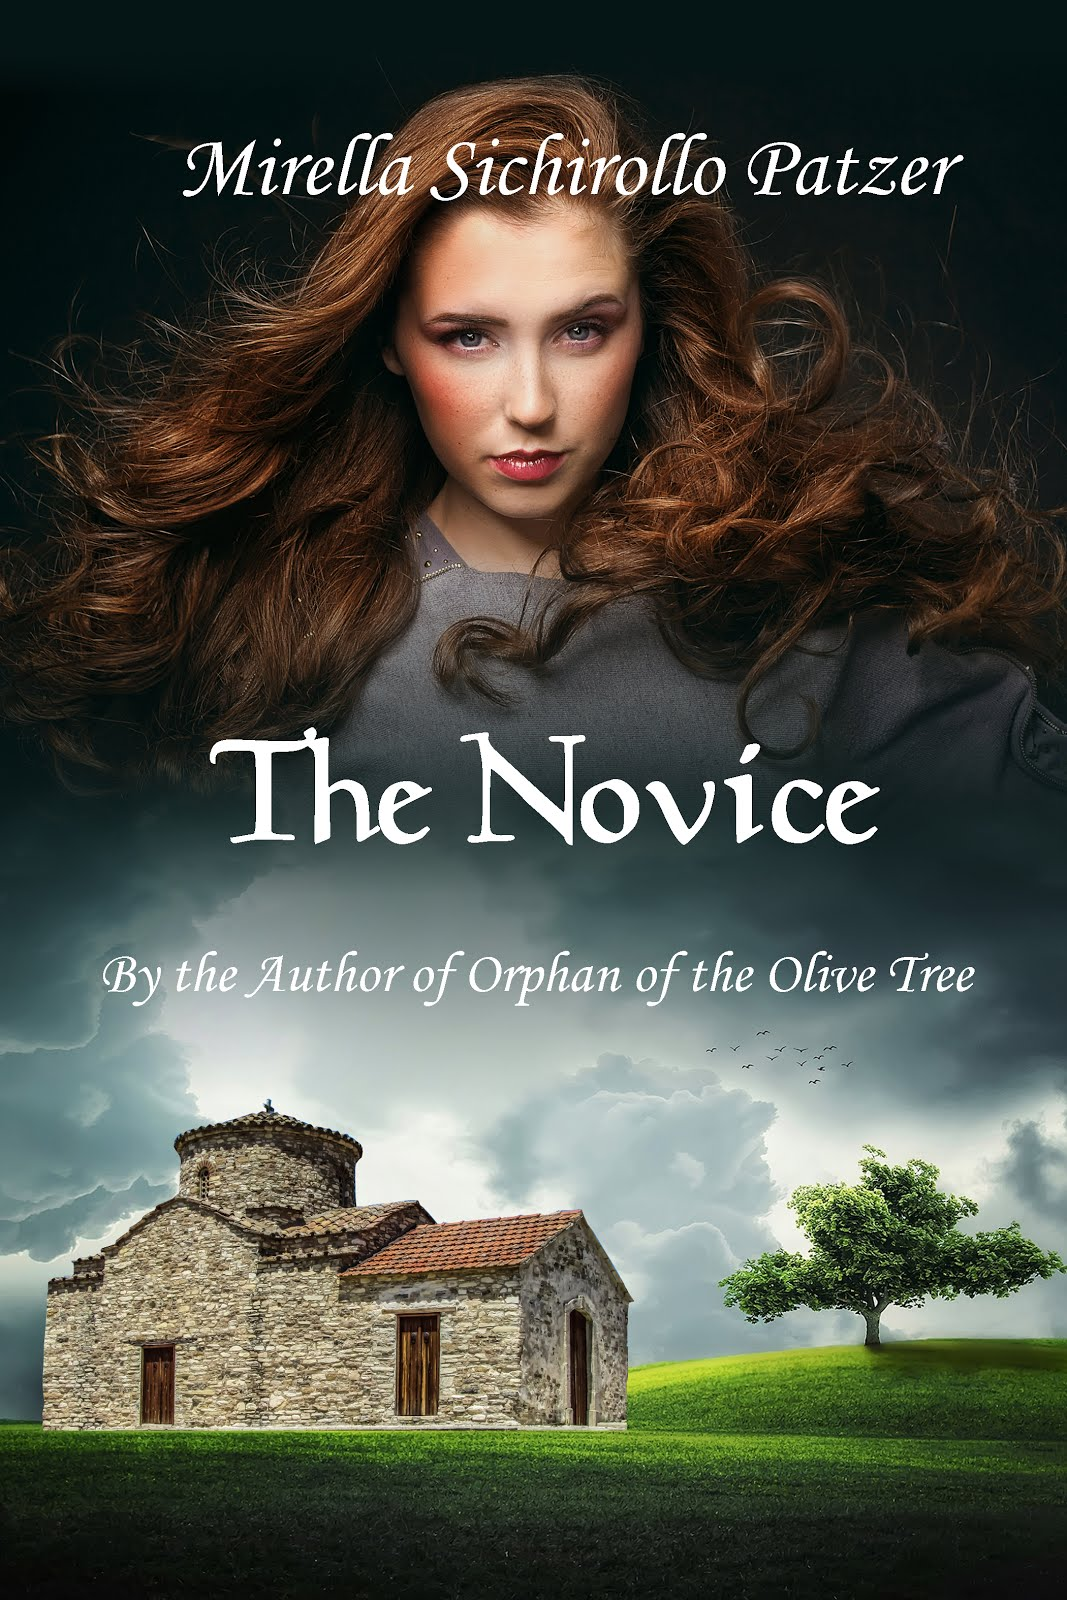 The Novice